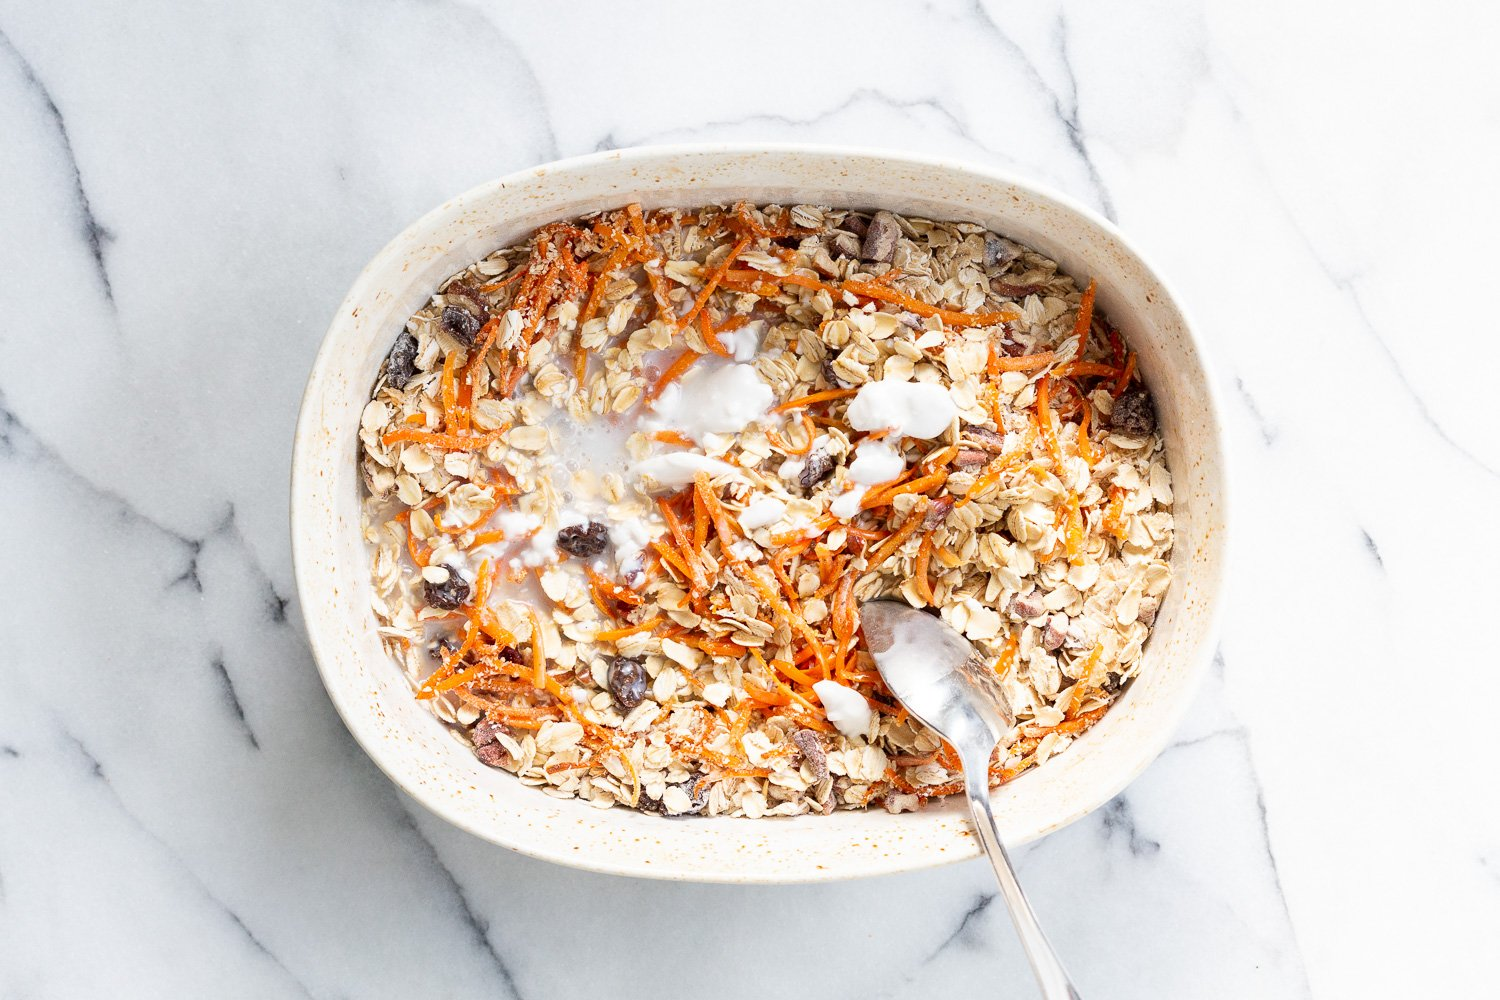 Non Dairy milk mixed with dry ingredients for Our Vegan Carrot Cake Baked Oatmeal in a baking dish